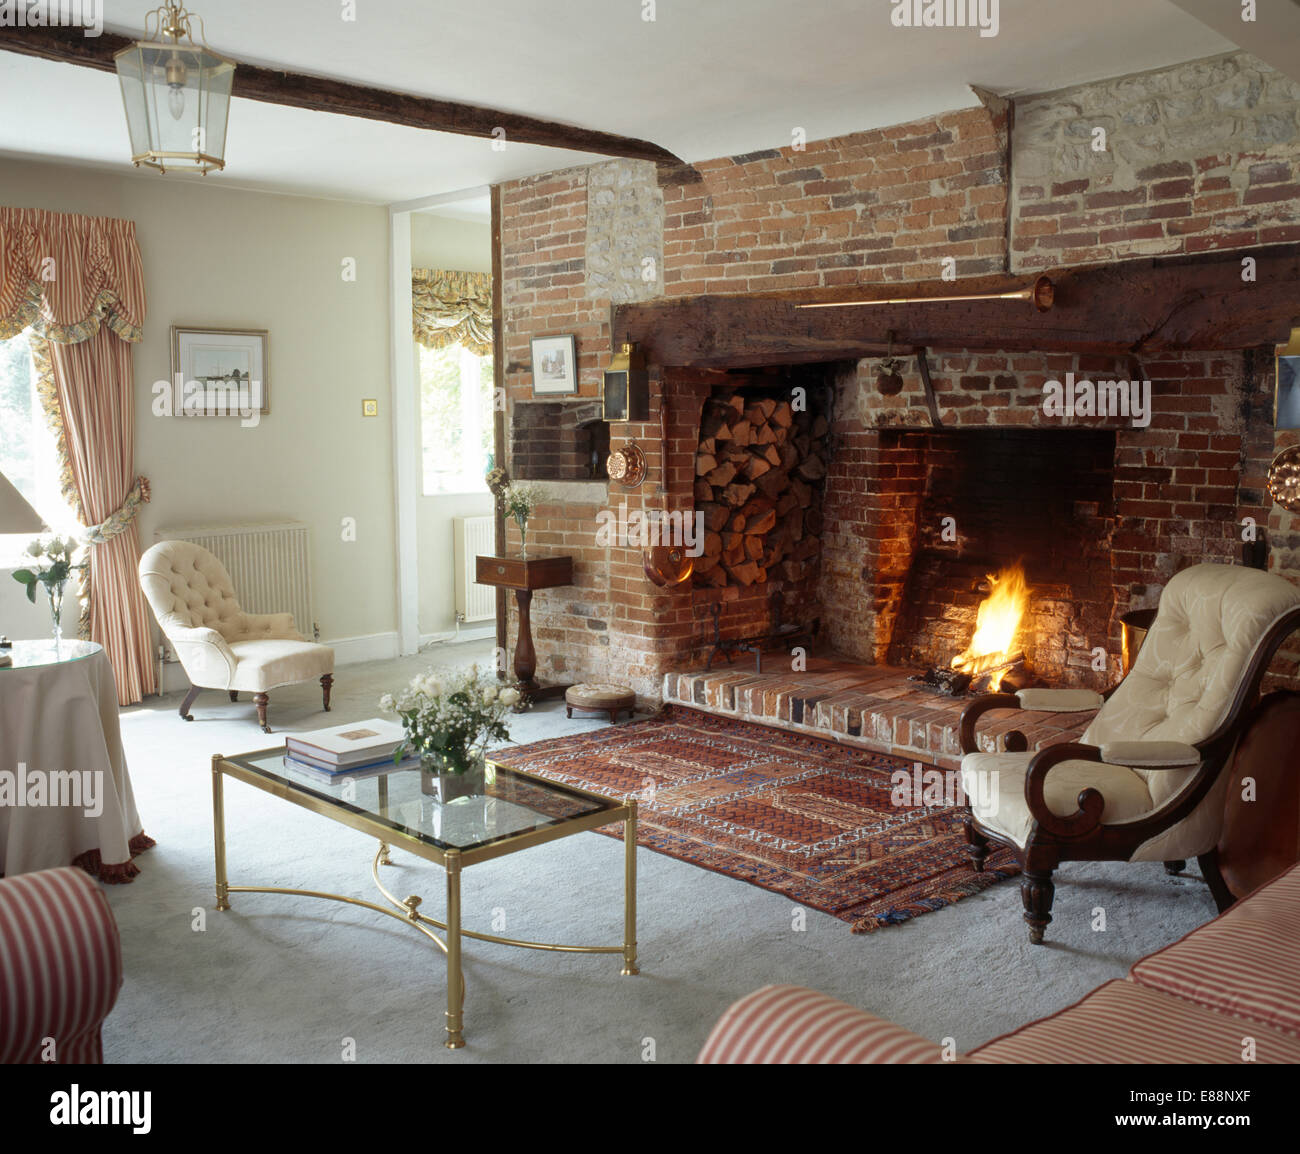 oriental rug in front of inglenook fireplace in cottage living